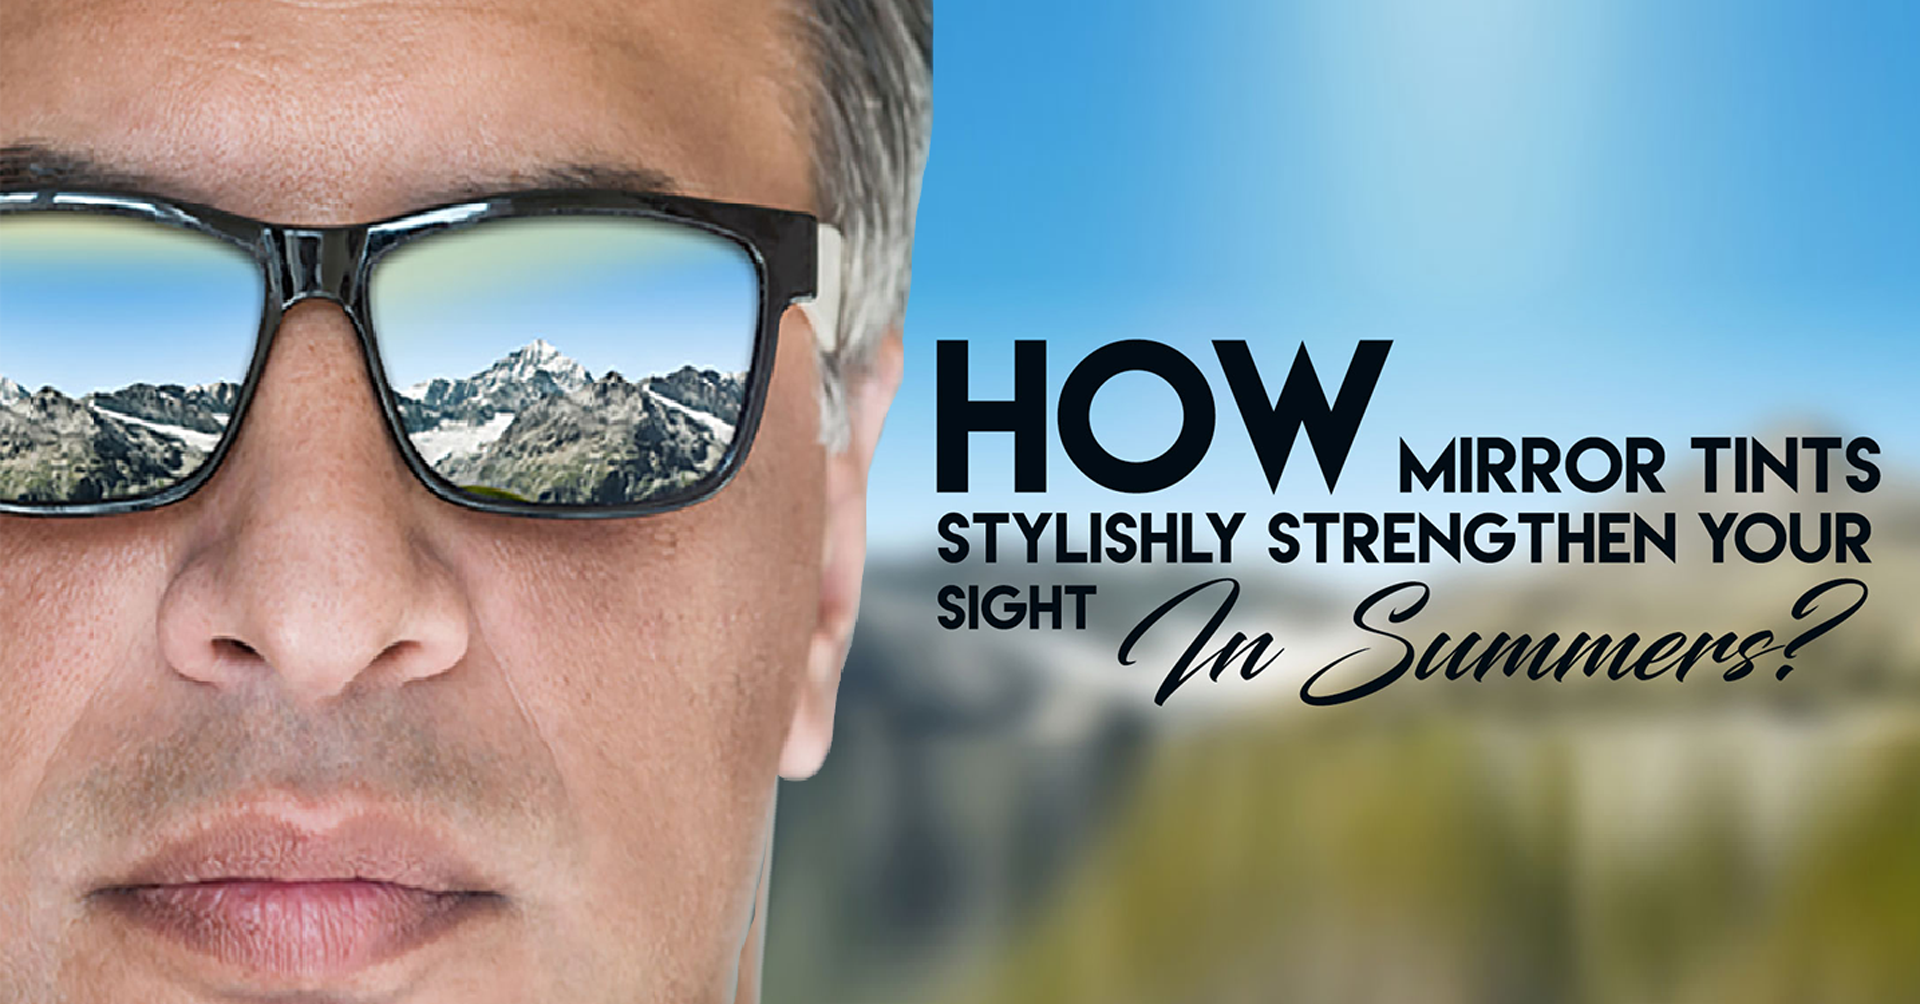 6)HOW MIRROR TINTS STYLISHLY STRENGTHEN YOUR SIGHT IN SUMMERS?